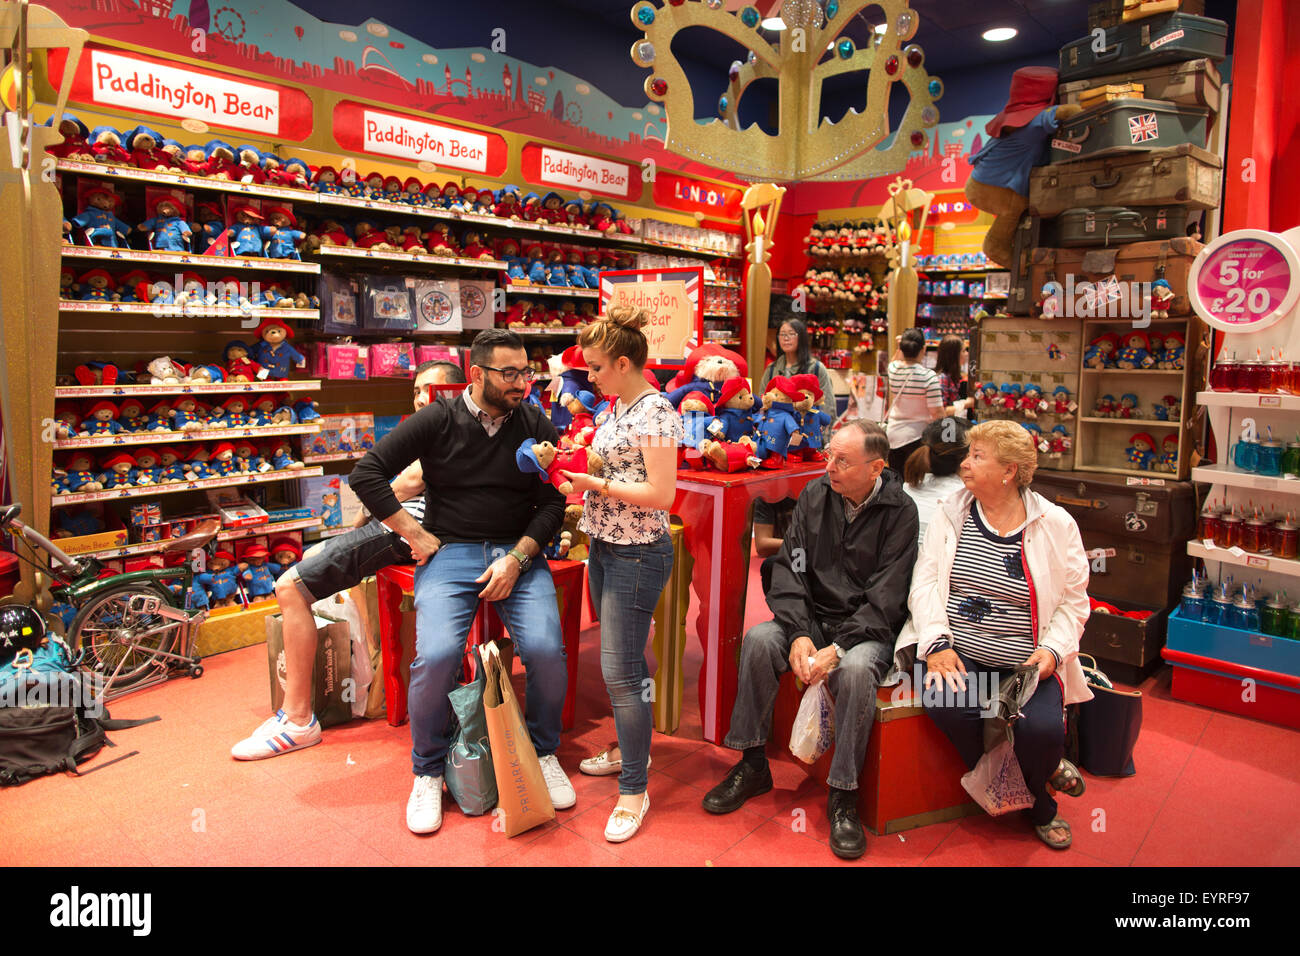 Toys From Hamleys : Hamleys toy shop the oldest in world regent